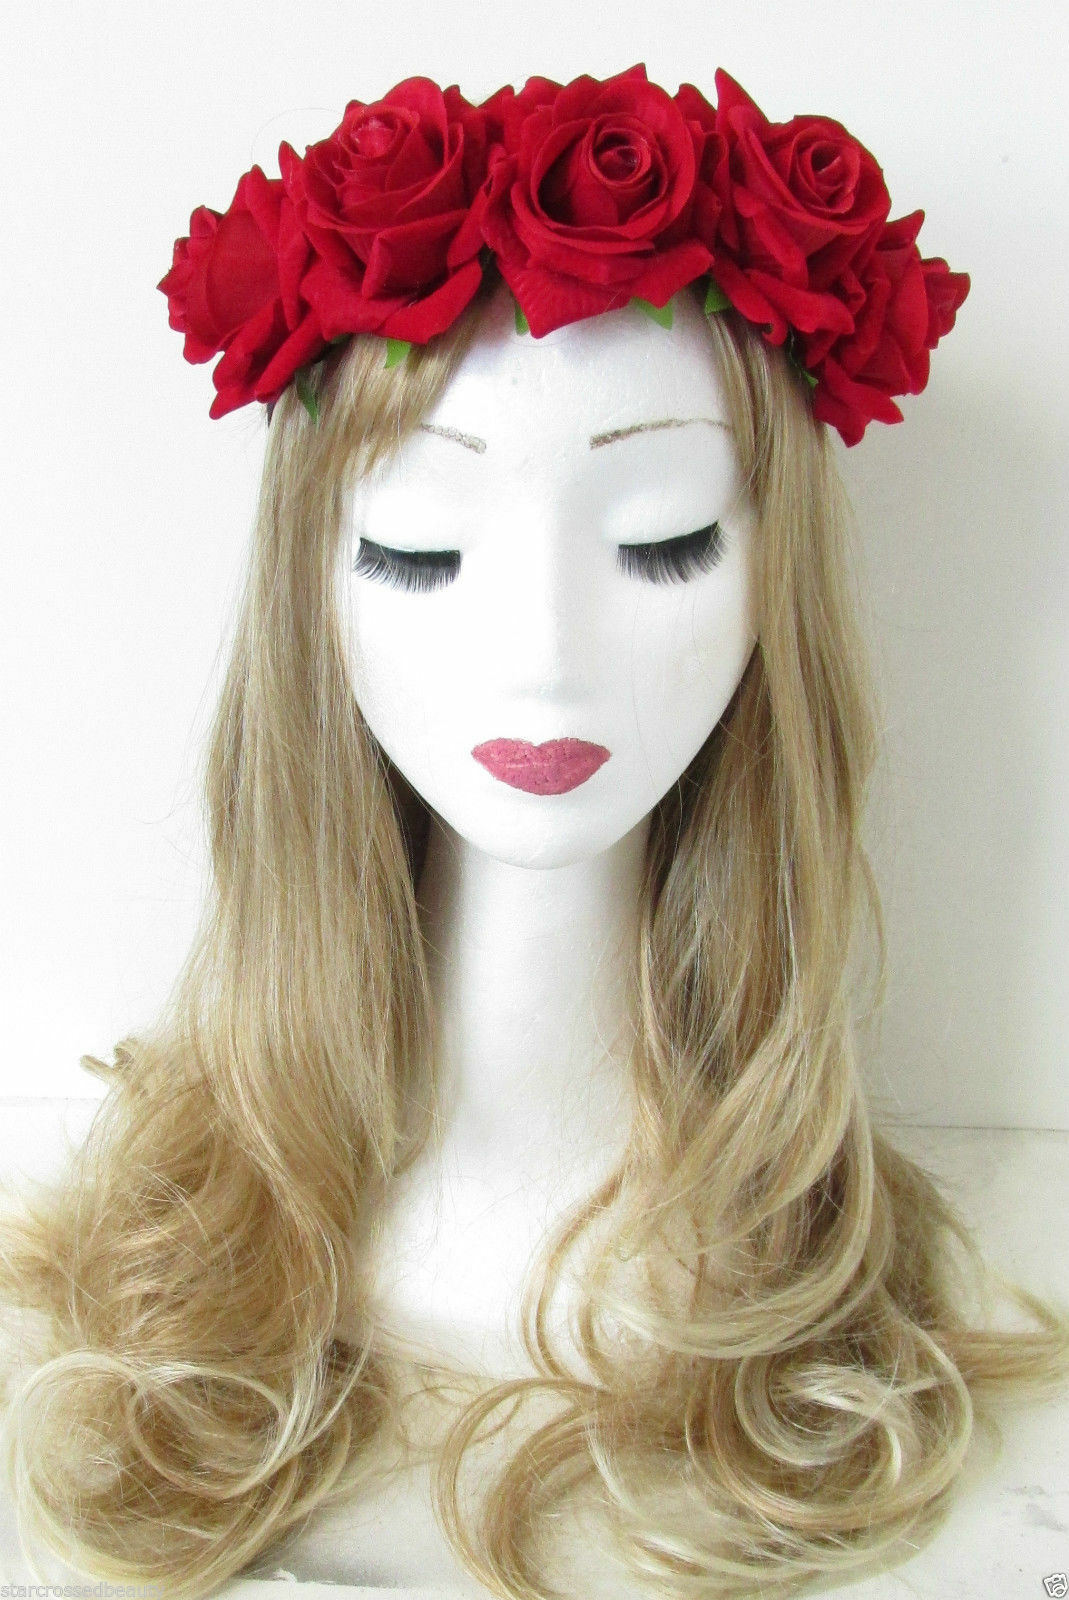 New Bridal Flower Rose Garland Crown Hair Band Wedding Headb